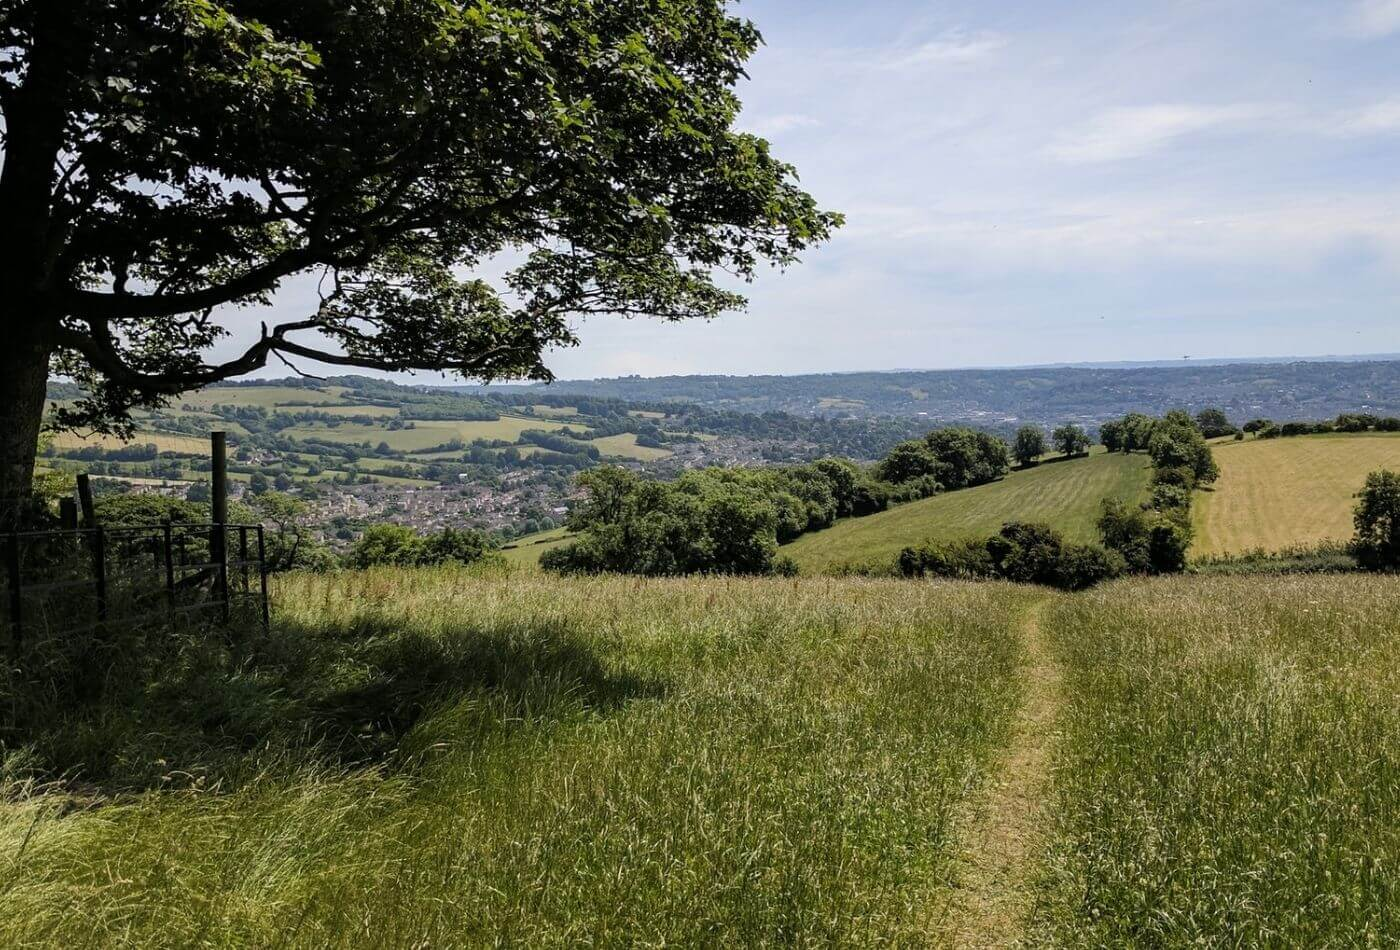 Cotswold Way Sign and Views